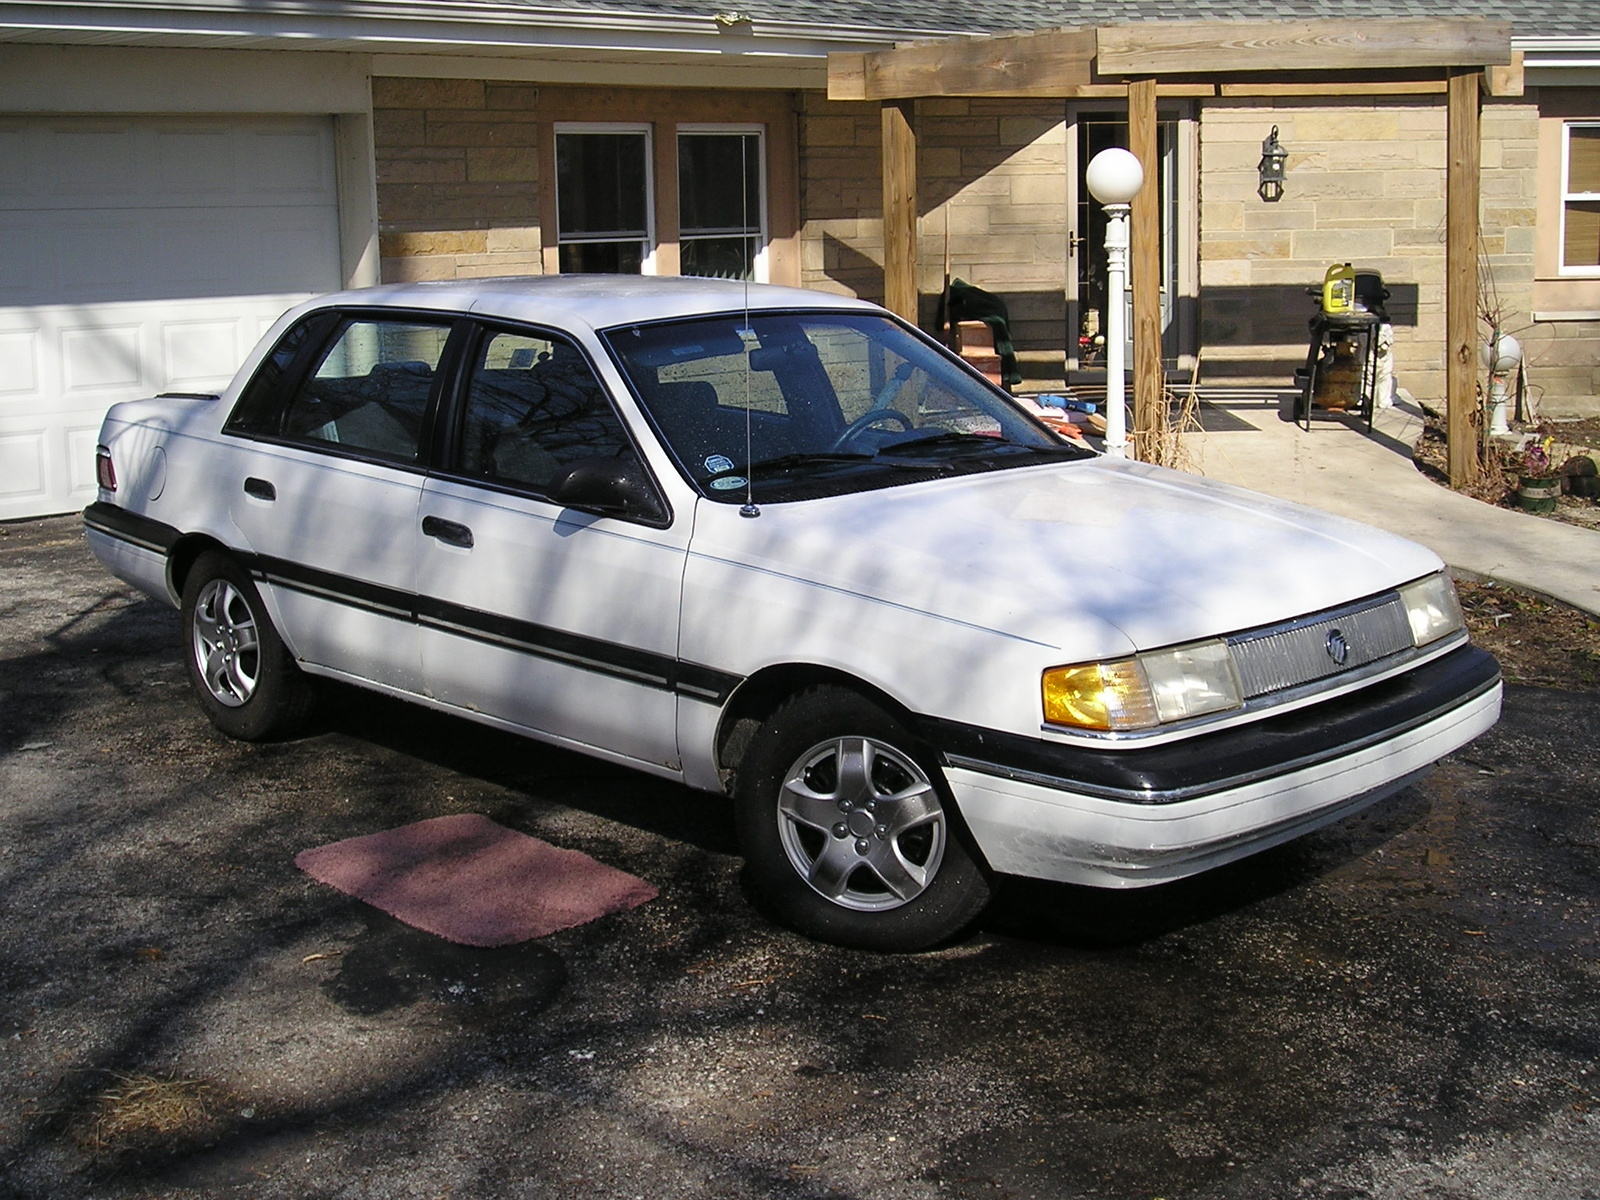 1990 Mercury Topaz 4 Dr GS Sedan picture